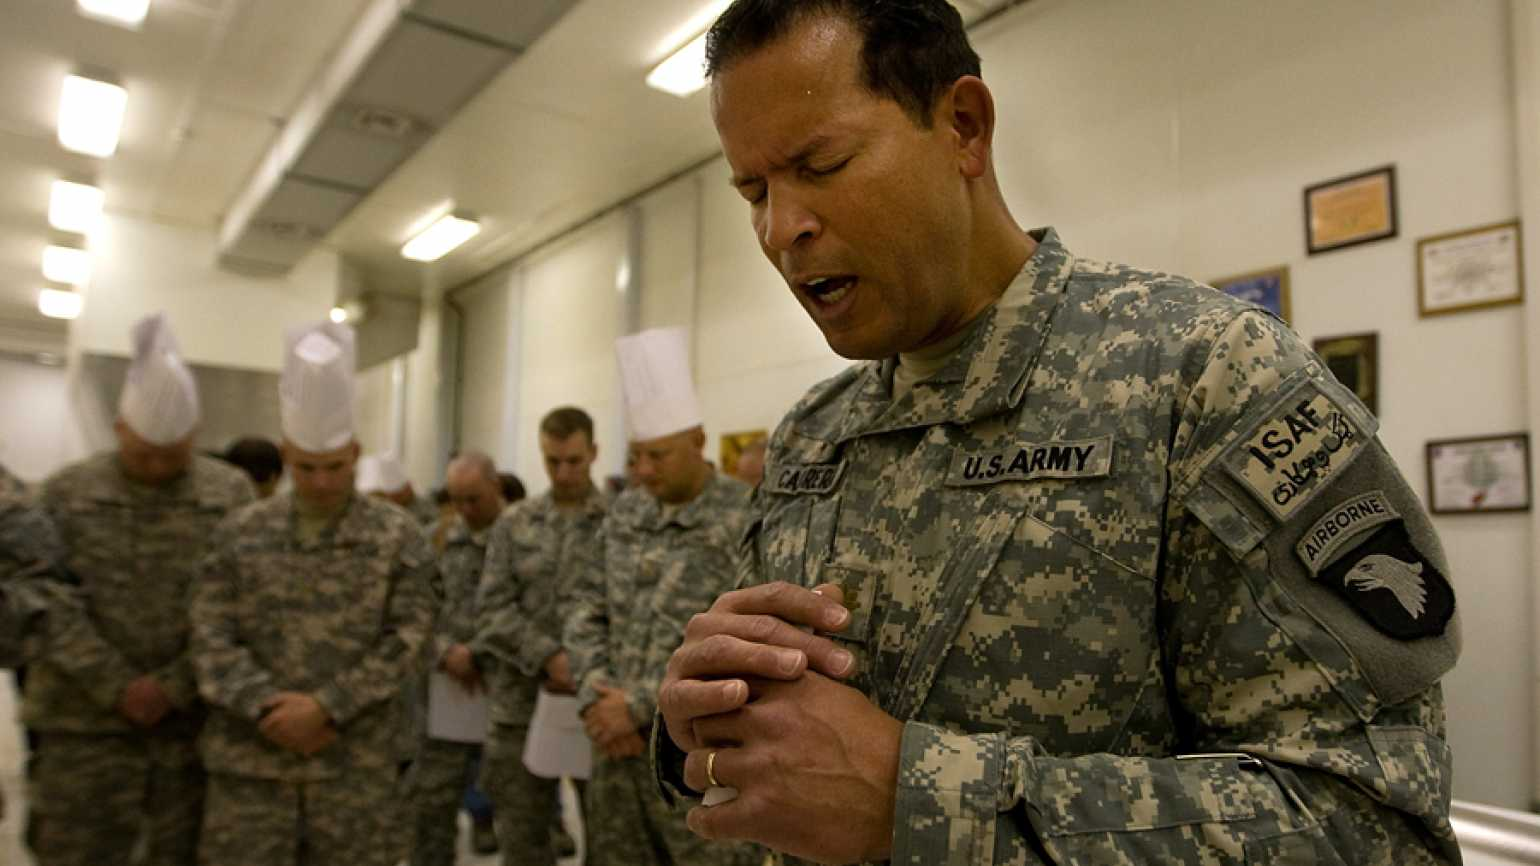 Military Chaplain prays with troops in Afghanistan